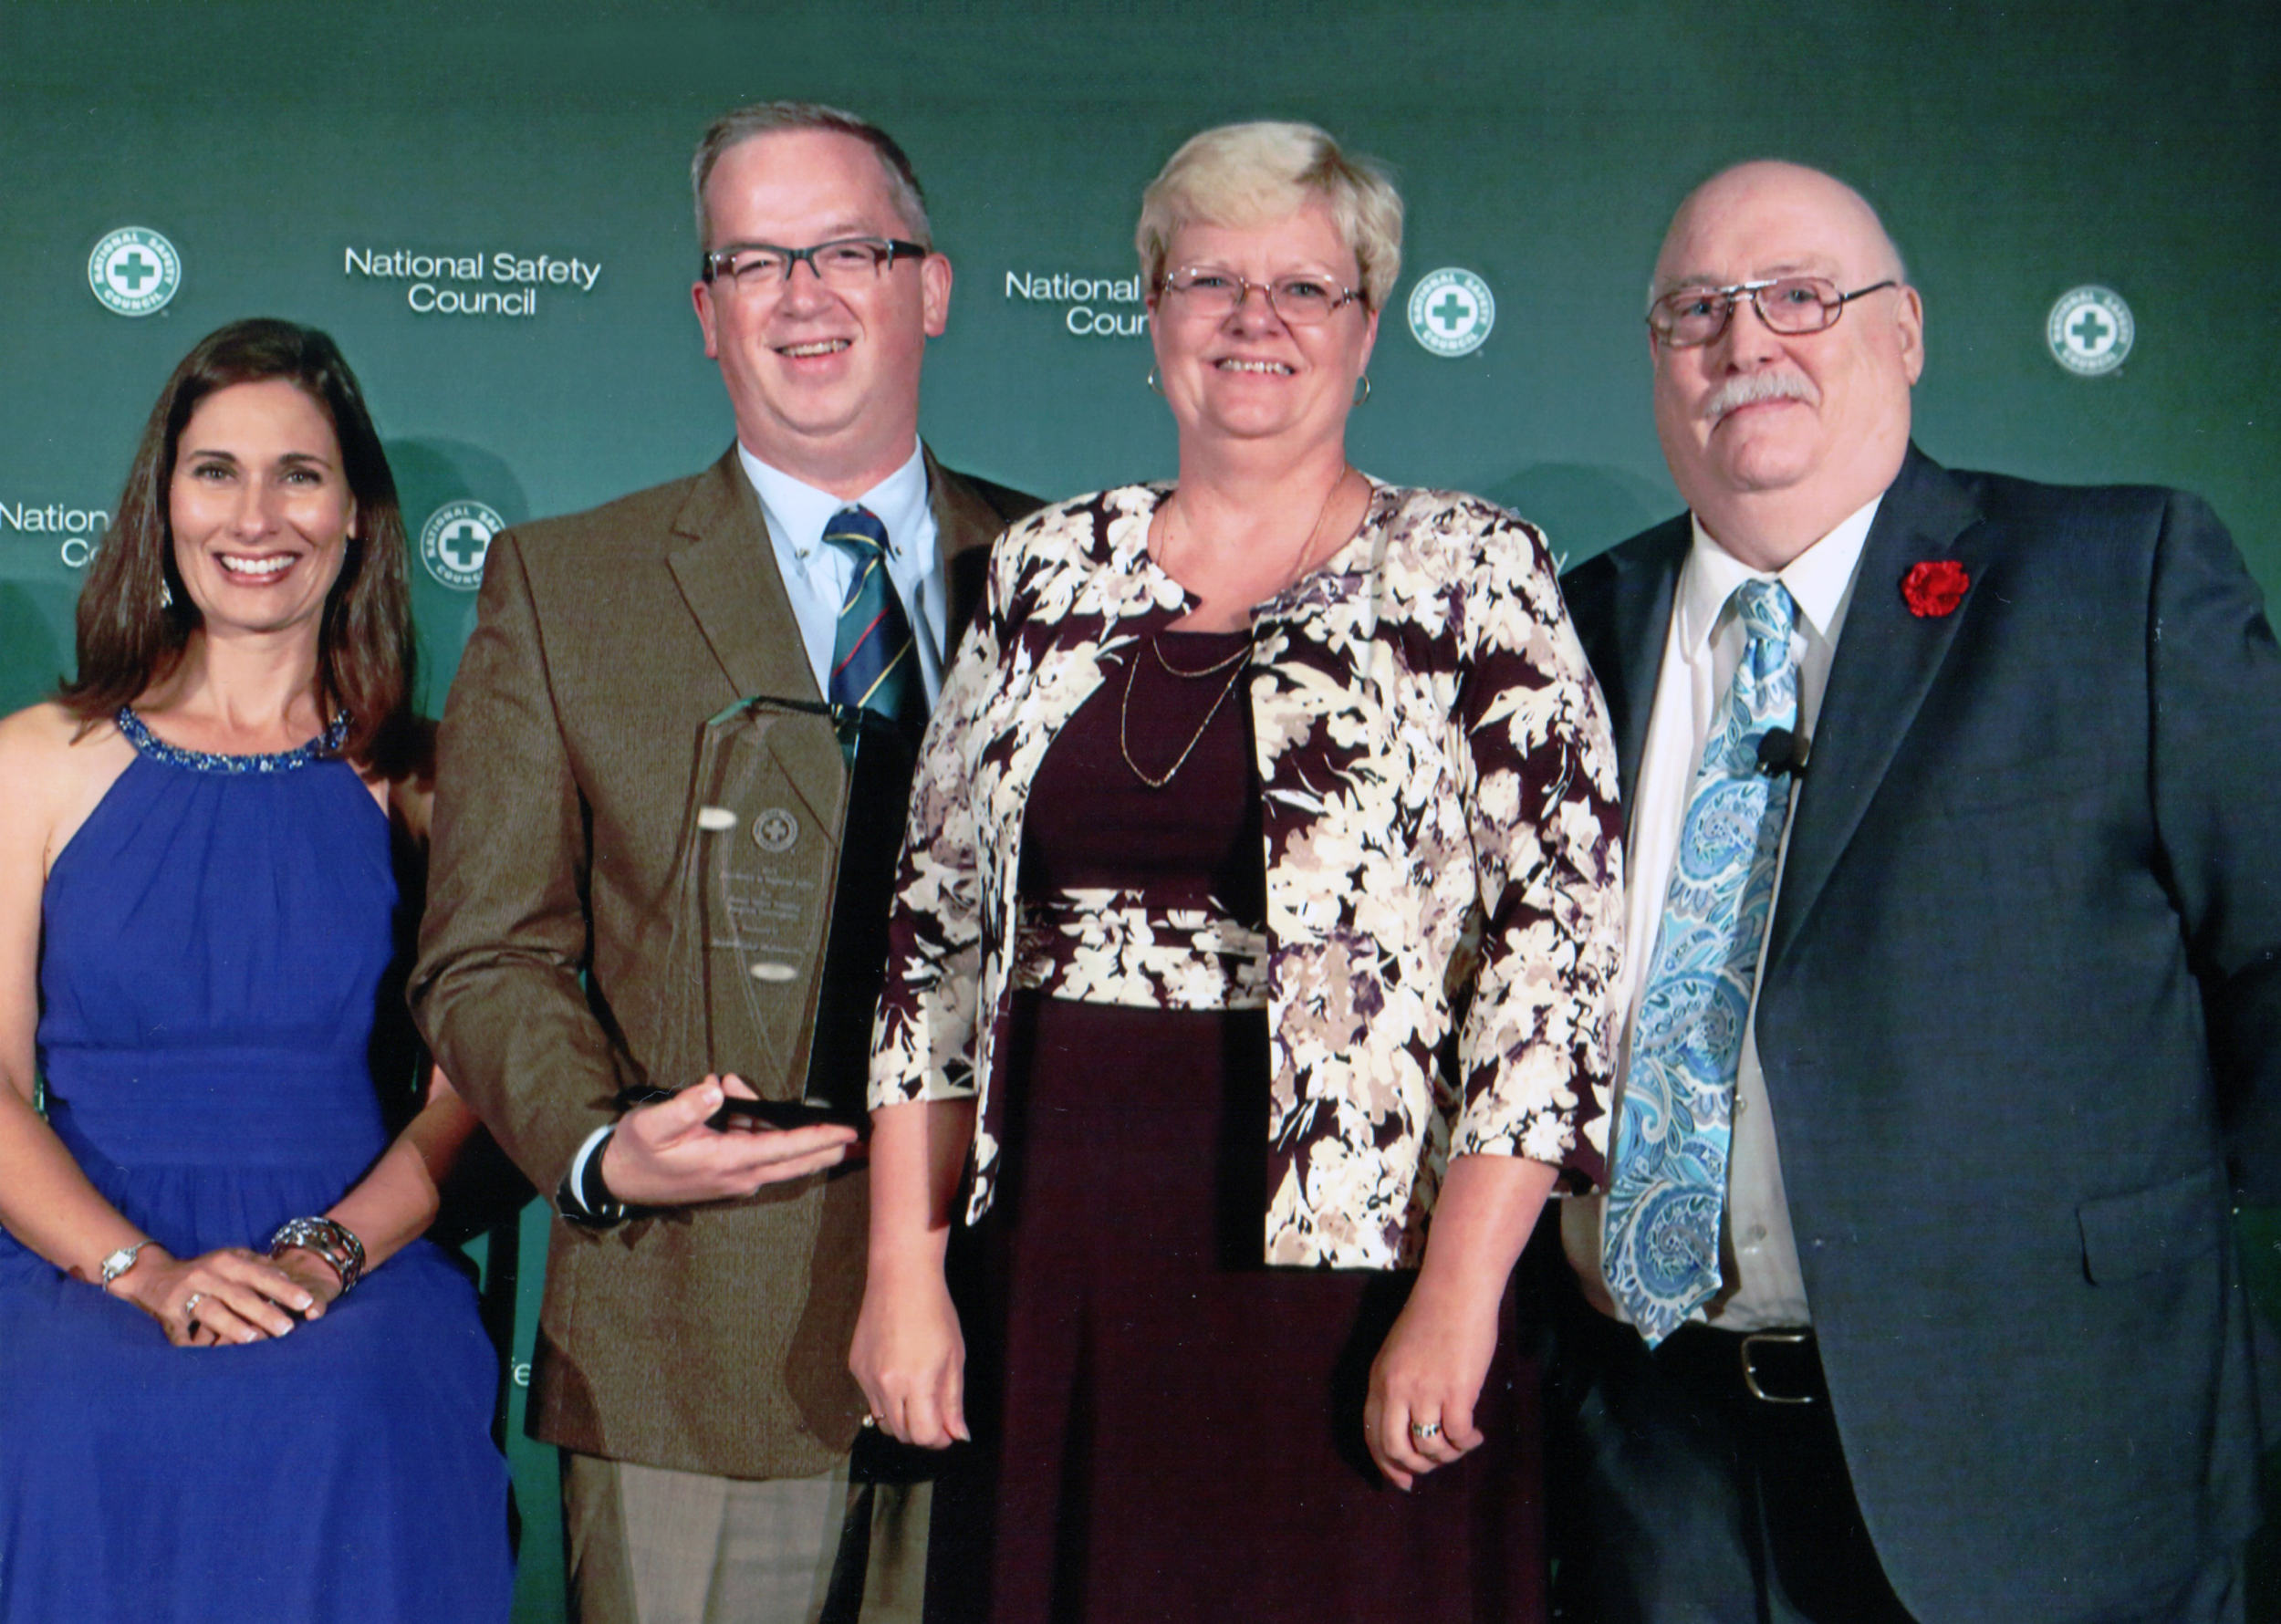 National Safety Council president and CEO Deborah A.P. Hersman (far left) and James A. Solomon, subject matter expert, Defensive Driving Courses (far right), stand with Barry Von   Lanken (middle left) and Lisa Von Lanken (middle right), recipients of the 2015 Excellence in Highway Safety for Driver Safety Training Program innovations award.